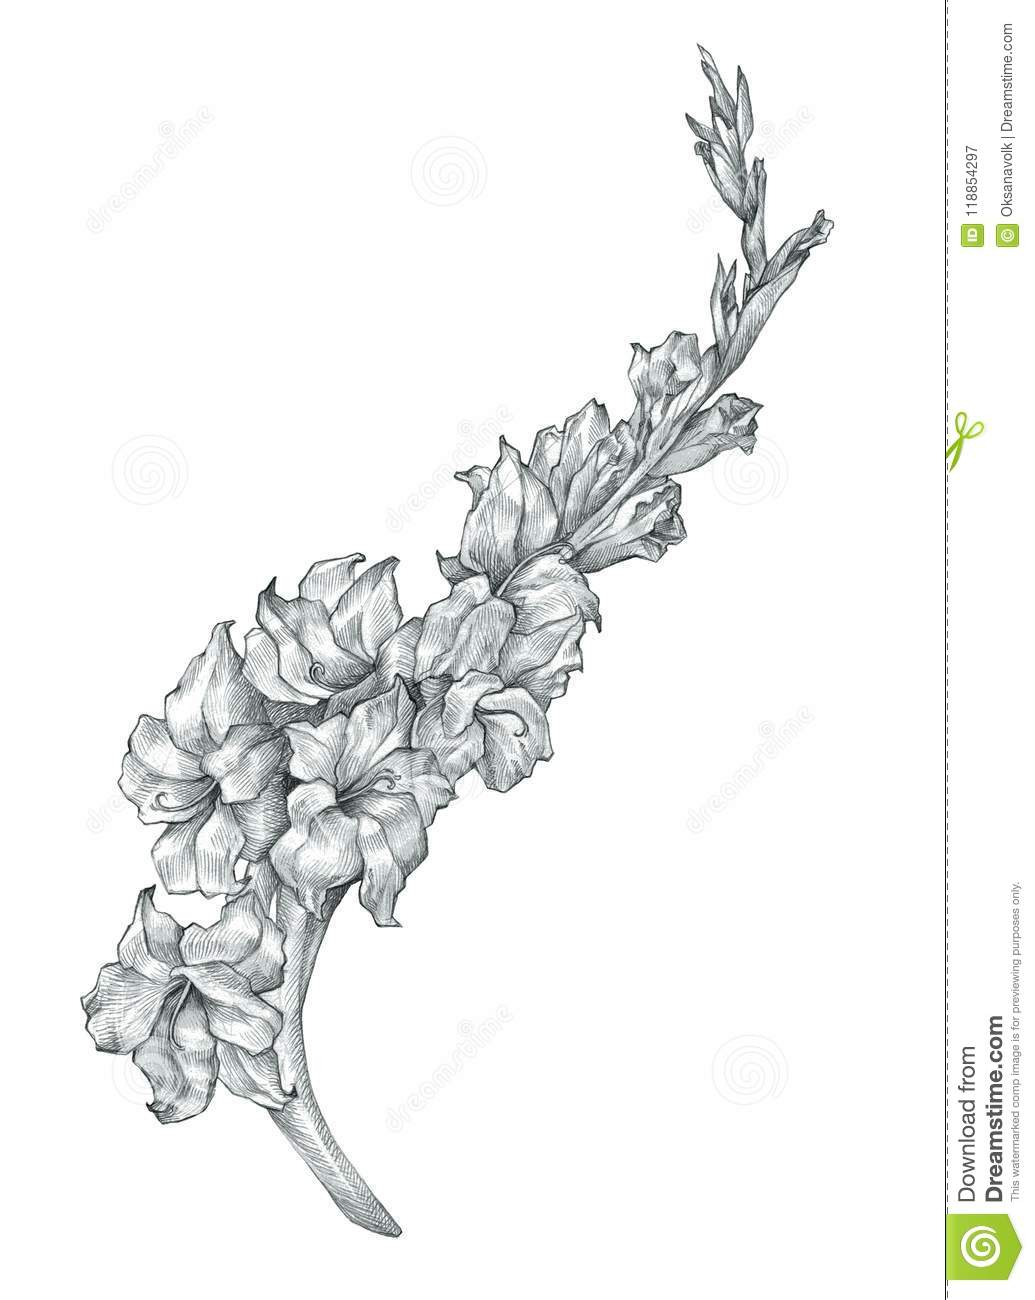 Beautiful Pencil Gladiolus Flower Drawing Sketch Illustration Stock